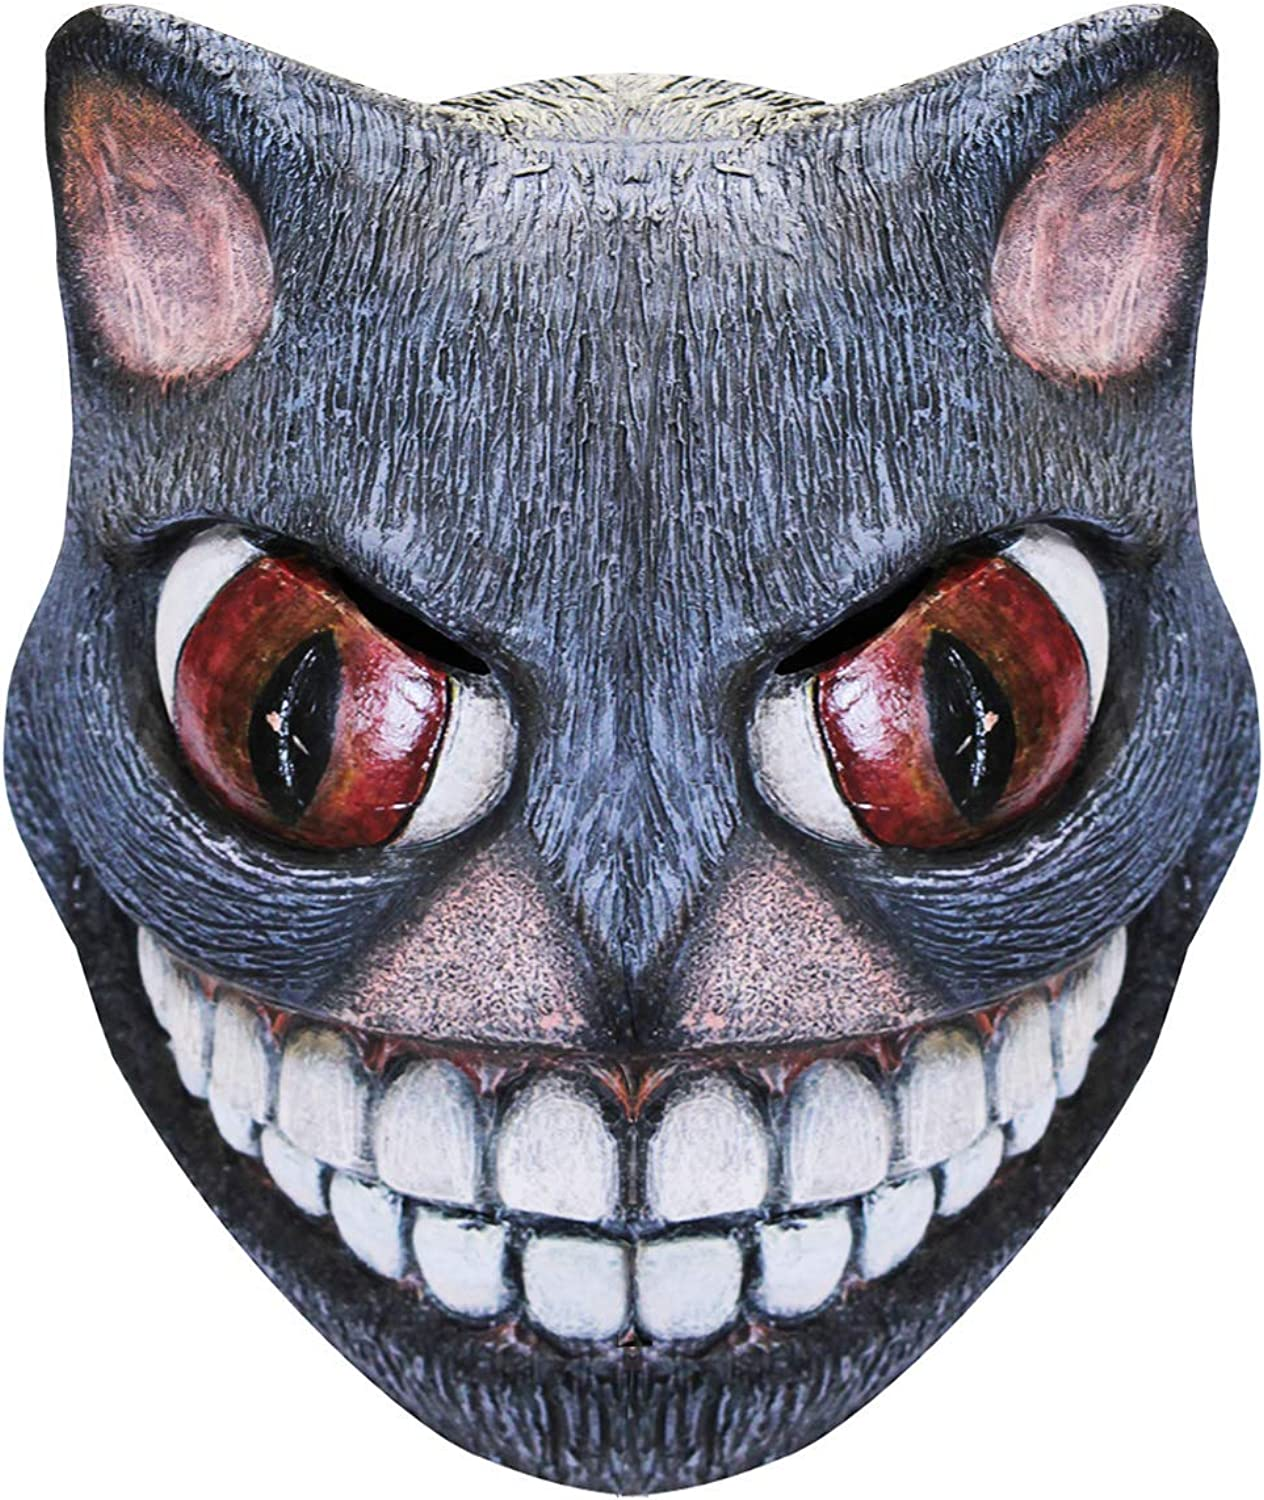 Amazon Com Ghoulish Productions Creepypasta Grinny Cat Cheshire